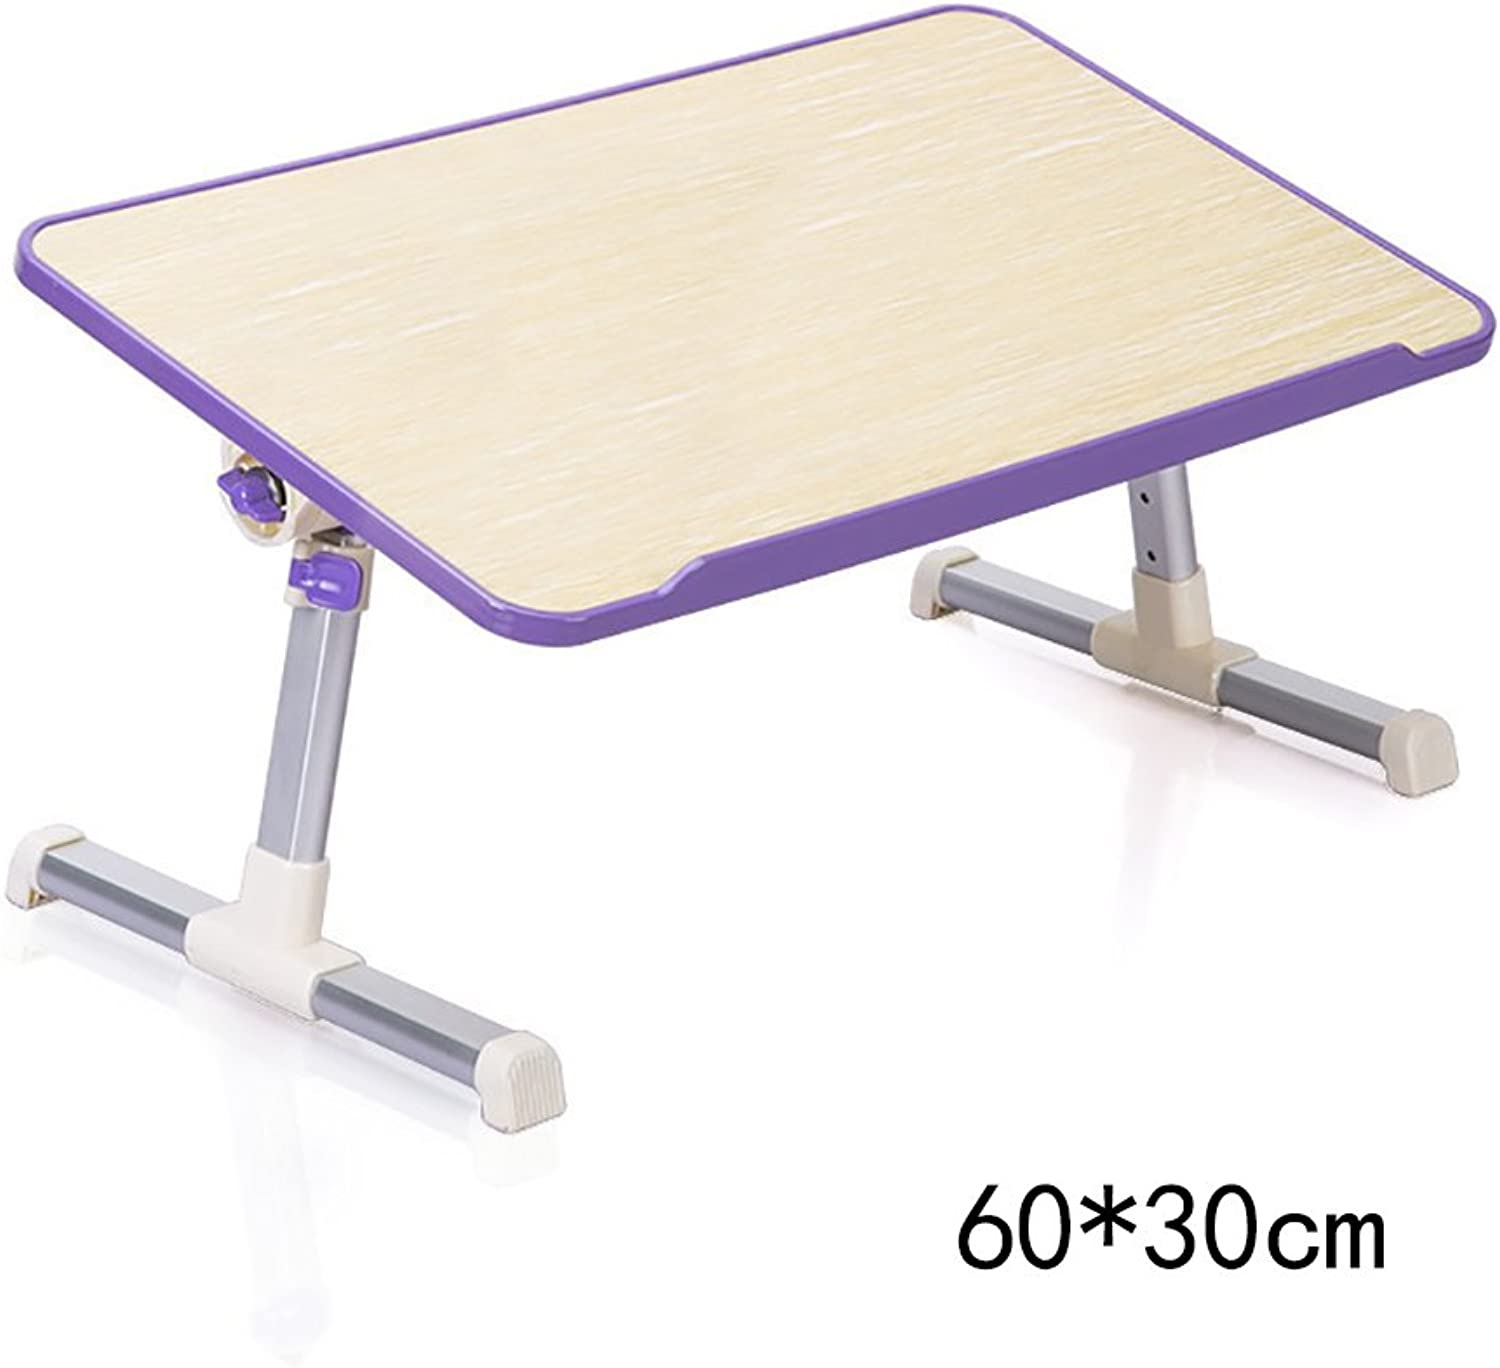 HAIPENG Laptop Tables Dormitory Learning Desk Household Folding Tables with Radiator (2 colors, 2 Styles Optional) (color   Purple, Style   A)